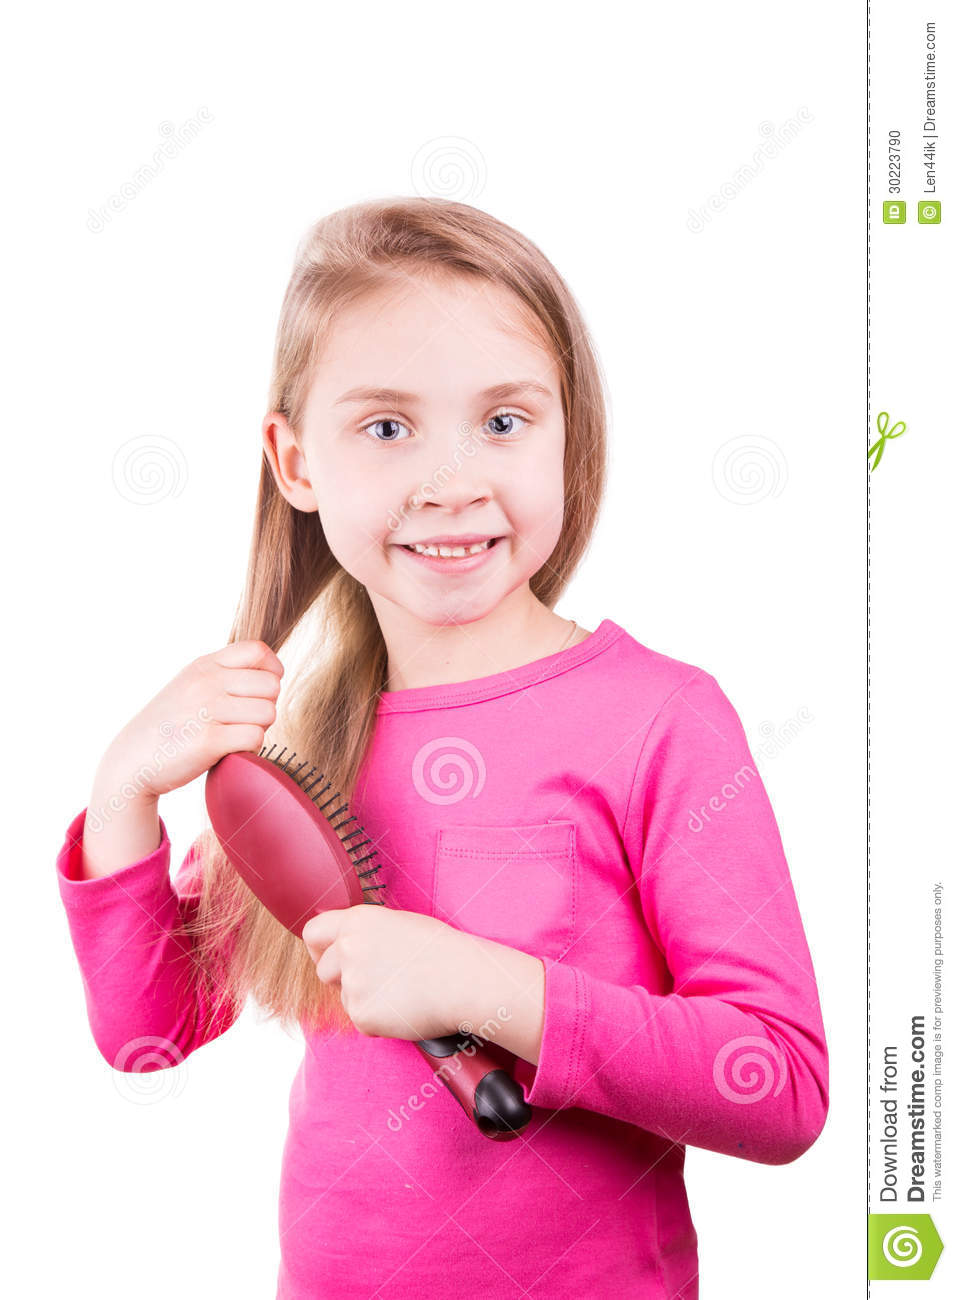 portrait-beautiful-little-girl-brushing-her-long-hair-isolated-white-hair-care-concept-30223790.jpg